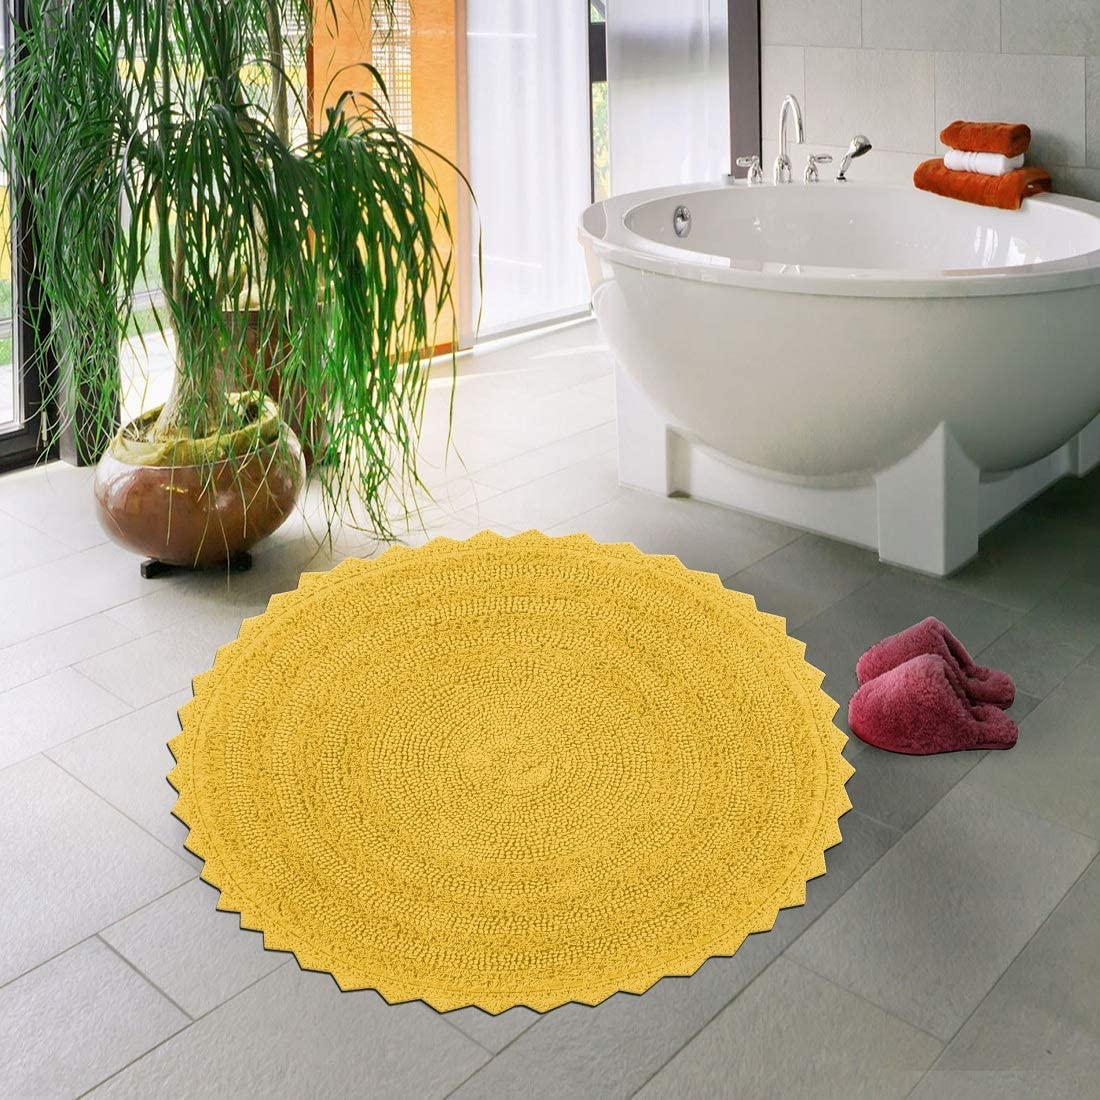 Sheen Decor 100% Cotton Reversible Bath Mat Extra Absorbent | Super Cozy & Extra Soft Cotton Bathroom Rug Floor Mat - 24 inches Round, Yellow